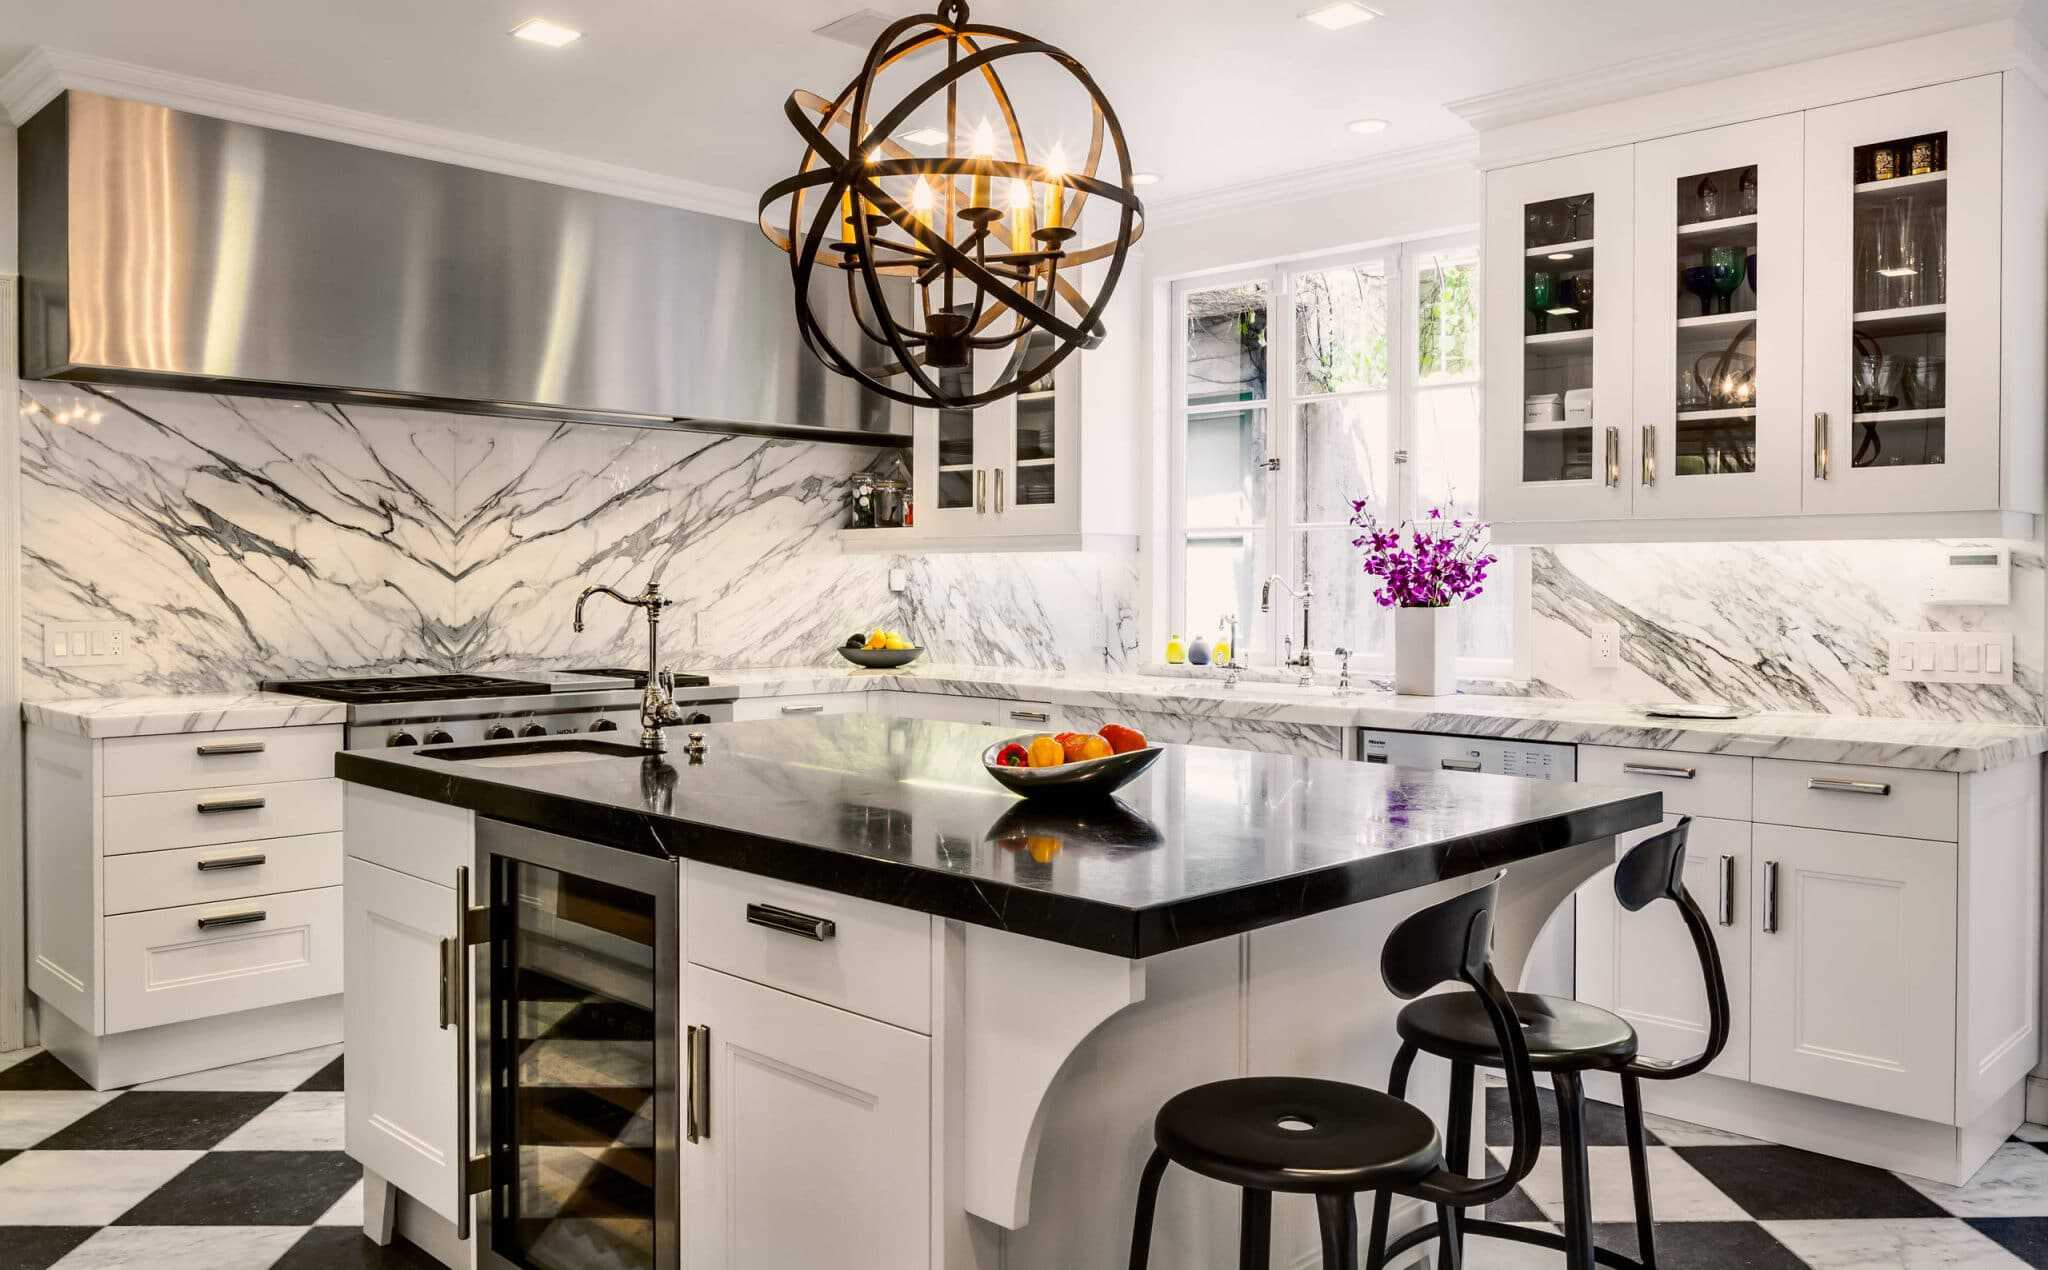 balck and whit marble Modern Kitchen Ideas Every Cook Is Sure To Fall In Love With